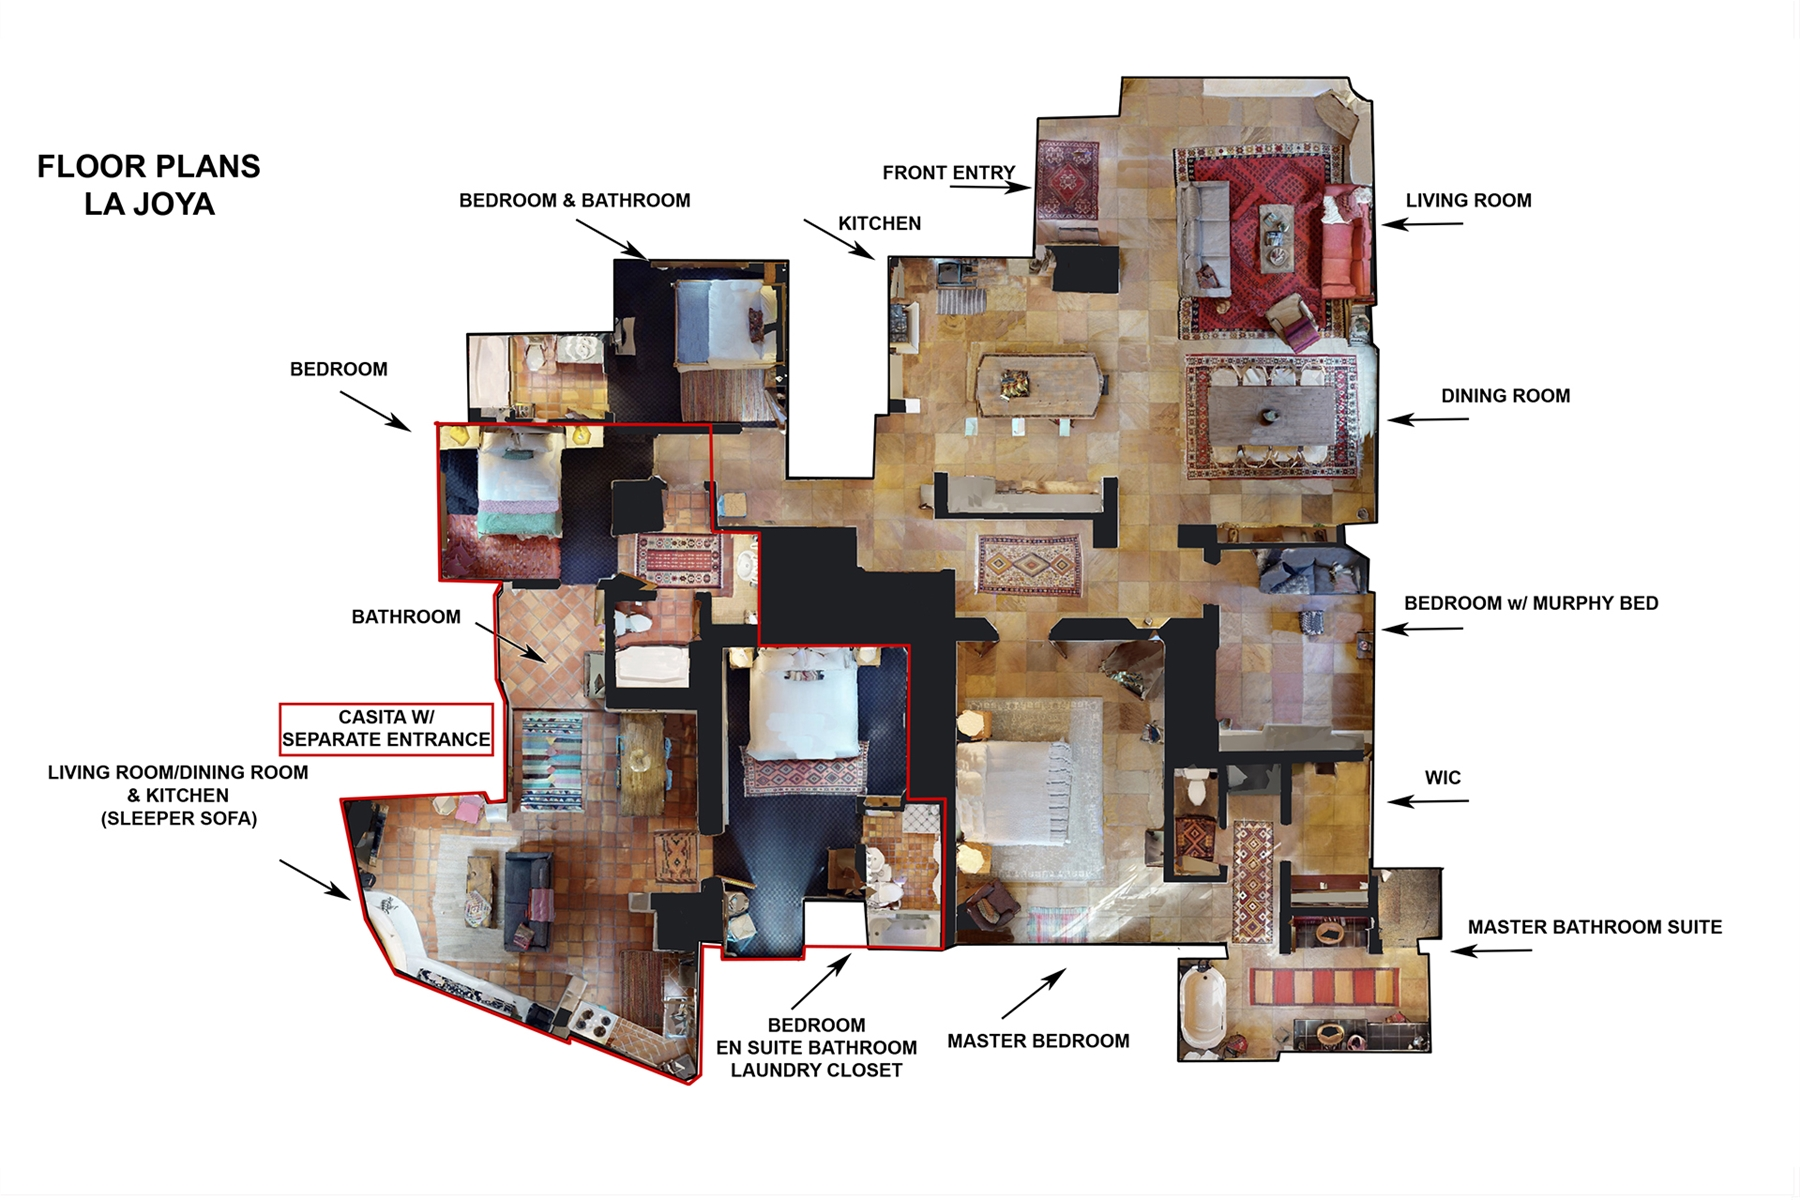 Floor Plan for La Joya